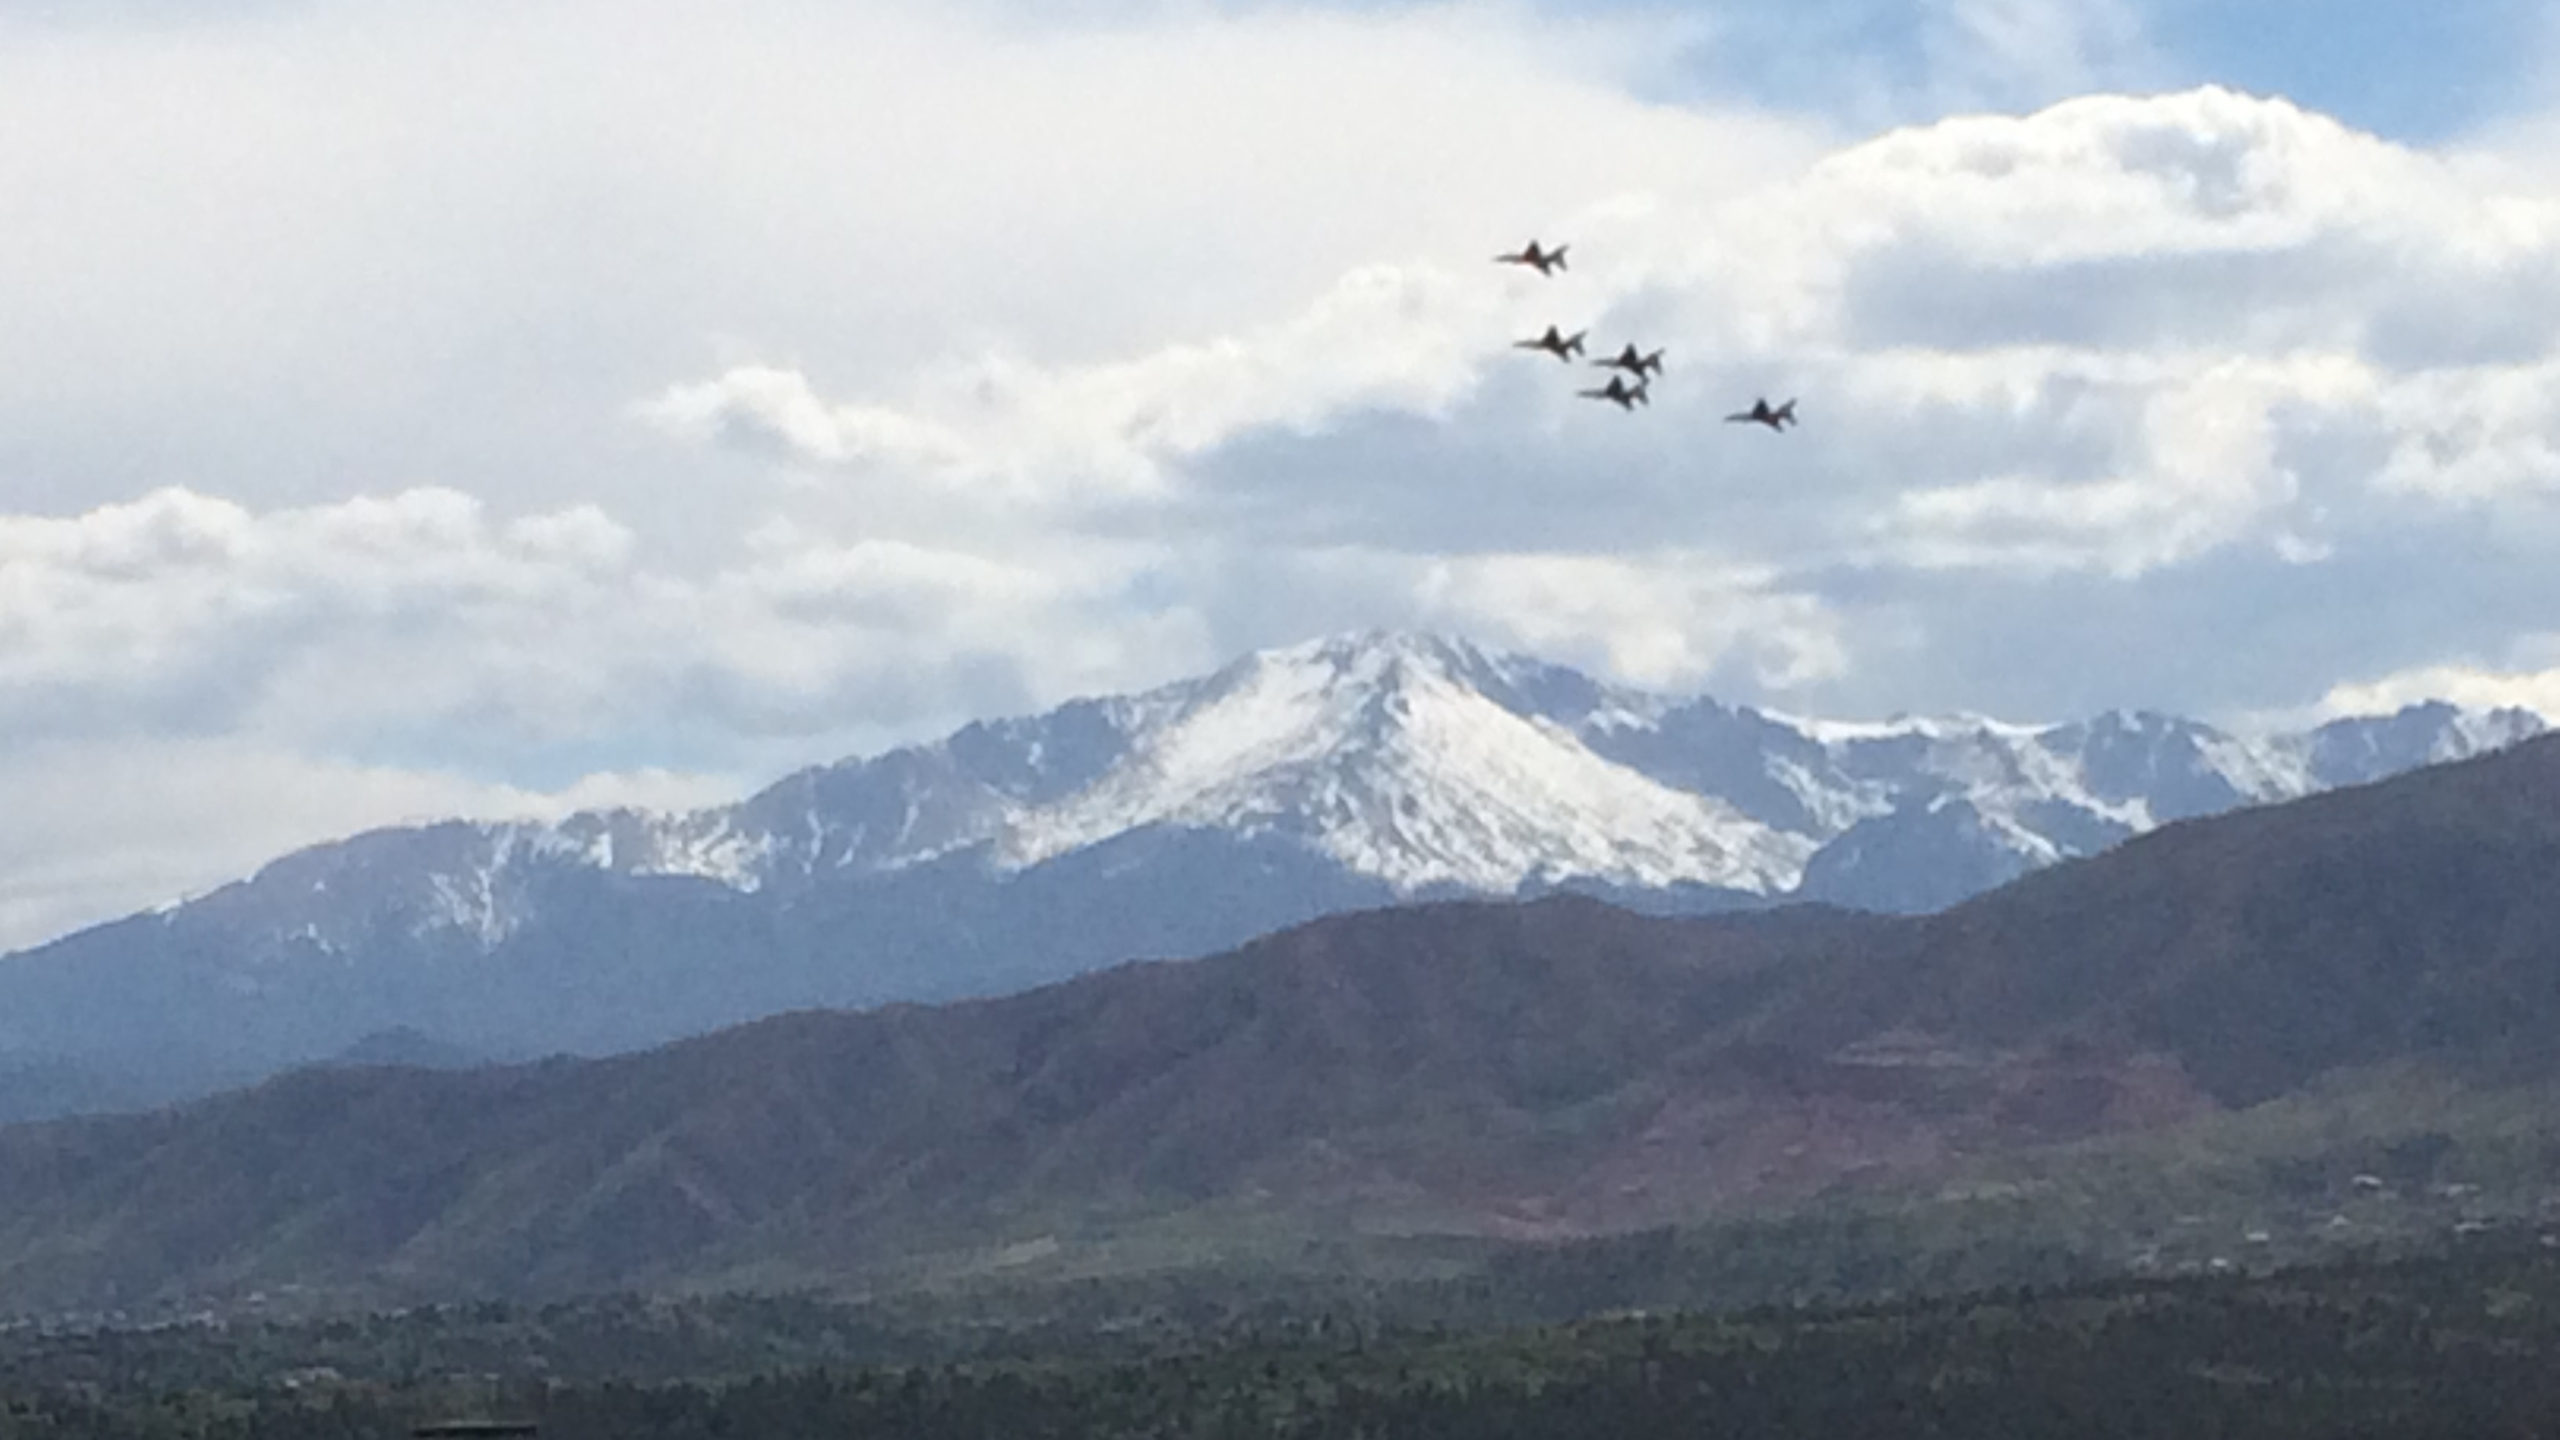 The Air Force Thunderbirds fly over the Air Force Academy during practice Tuesday, May 30, 2016. Mike Duran - FOX21 News